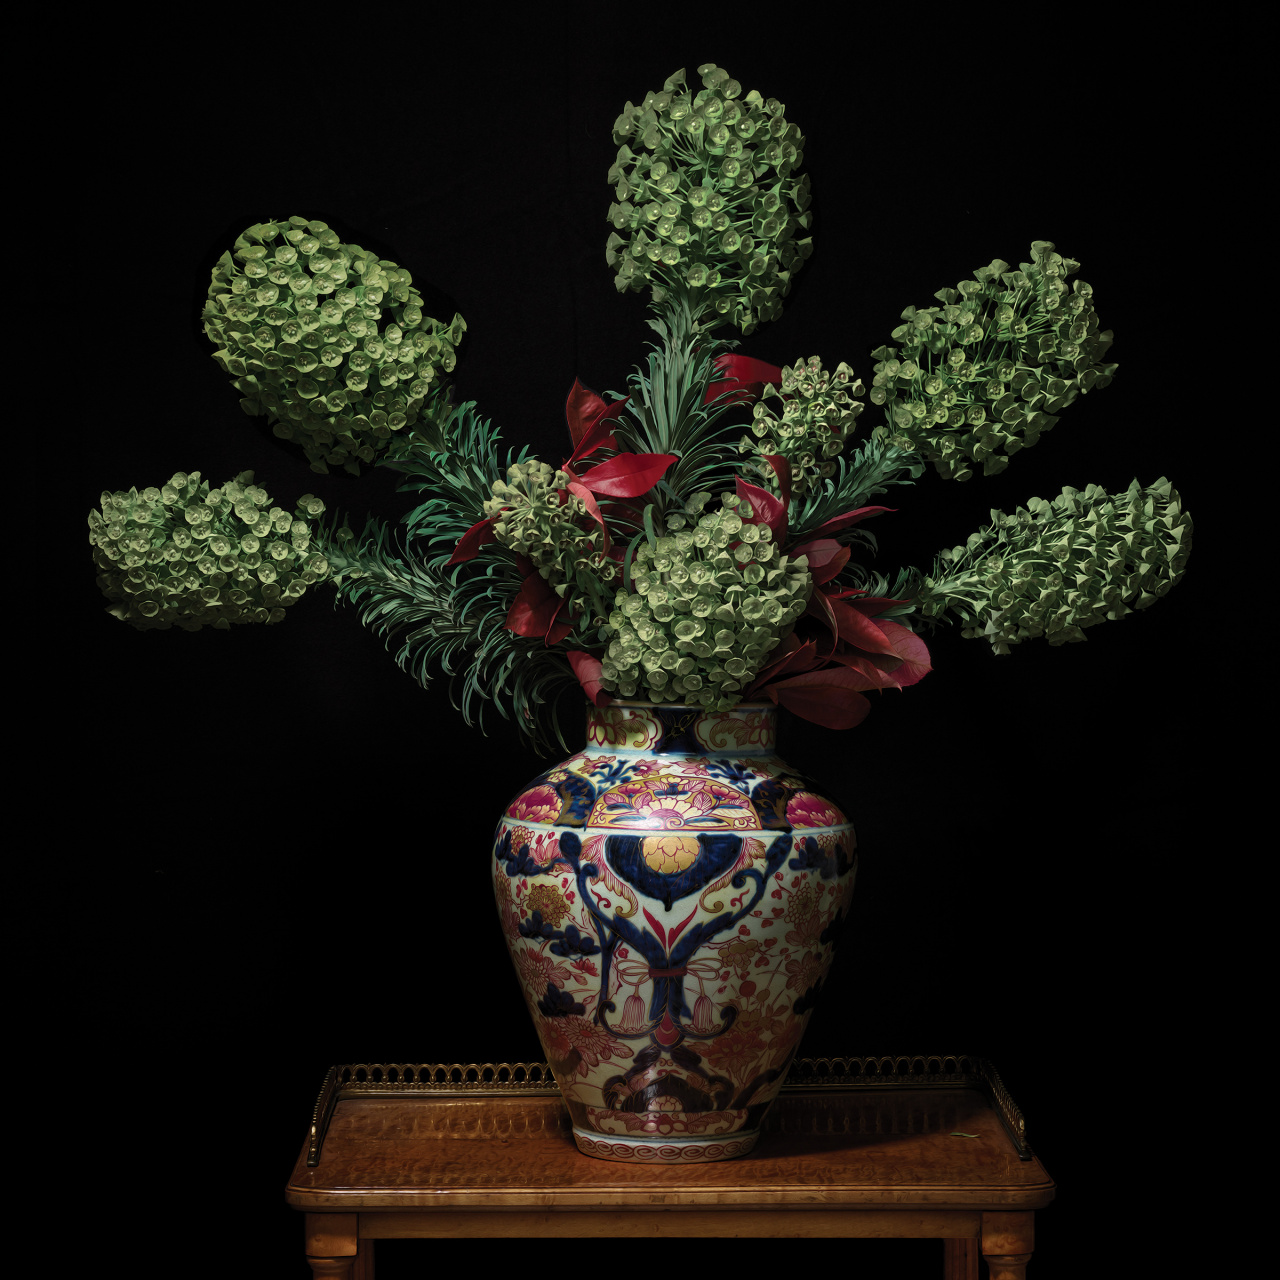 T.M. Glass, Euphorbia in a Japanese Imari Vessel, from the Royal Lodge series, 2018. Courtesy of the artist.